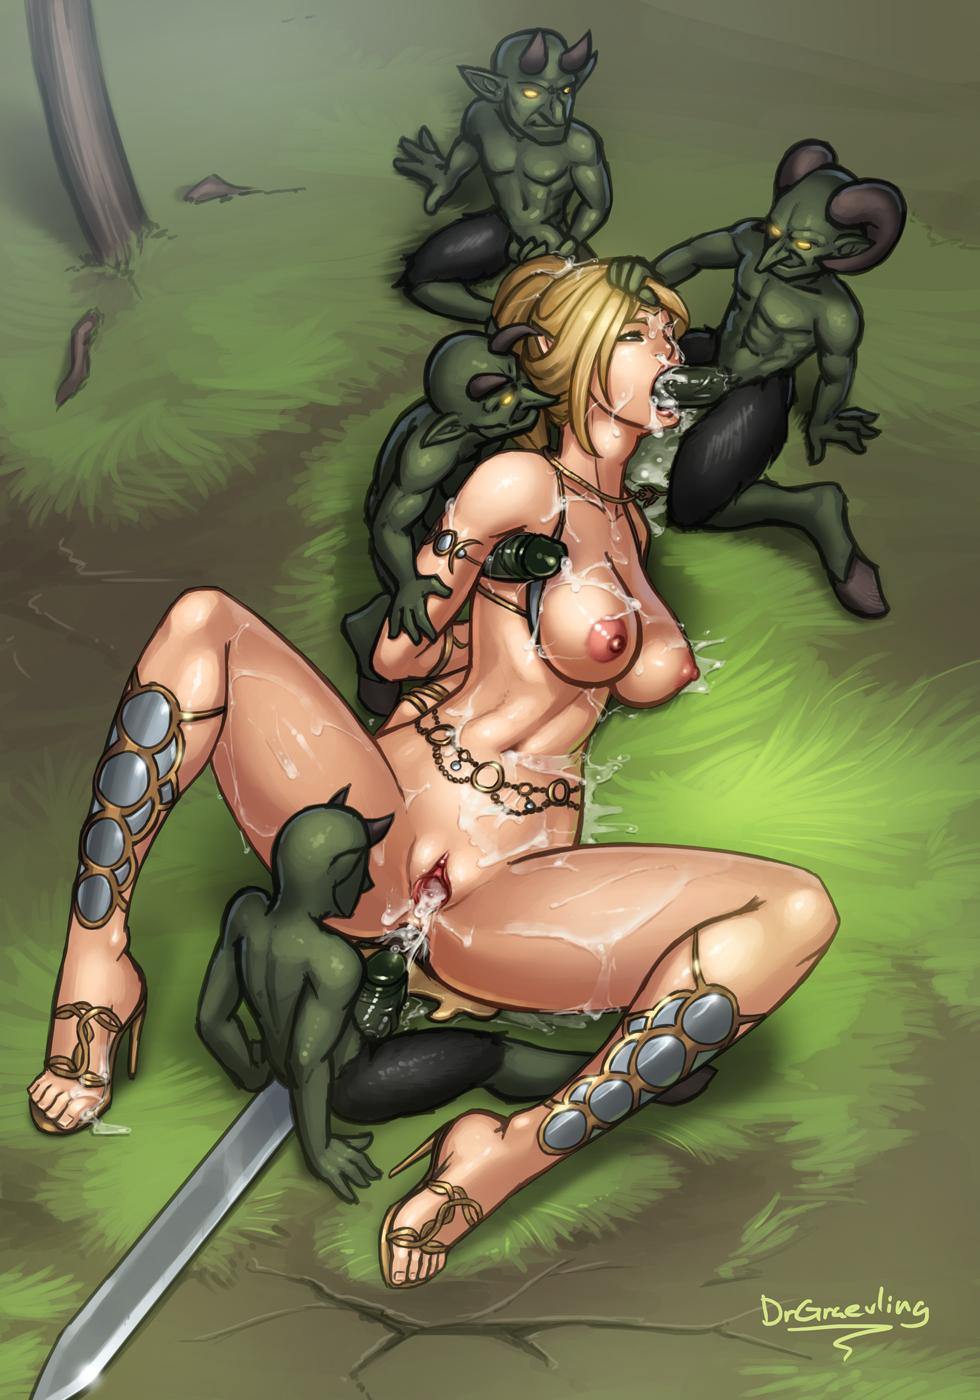 Elf girl fucked in water smut comics